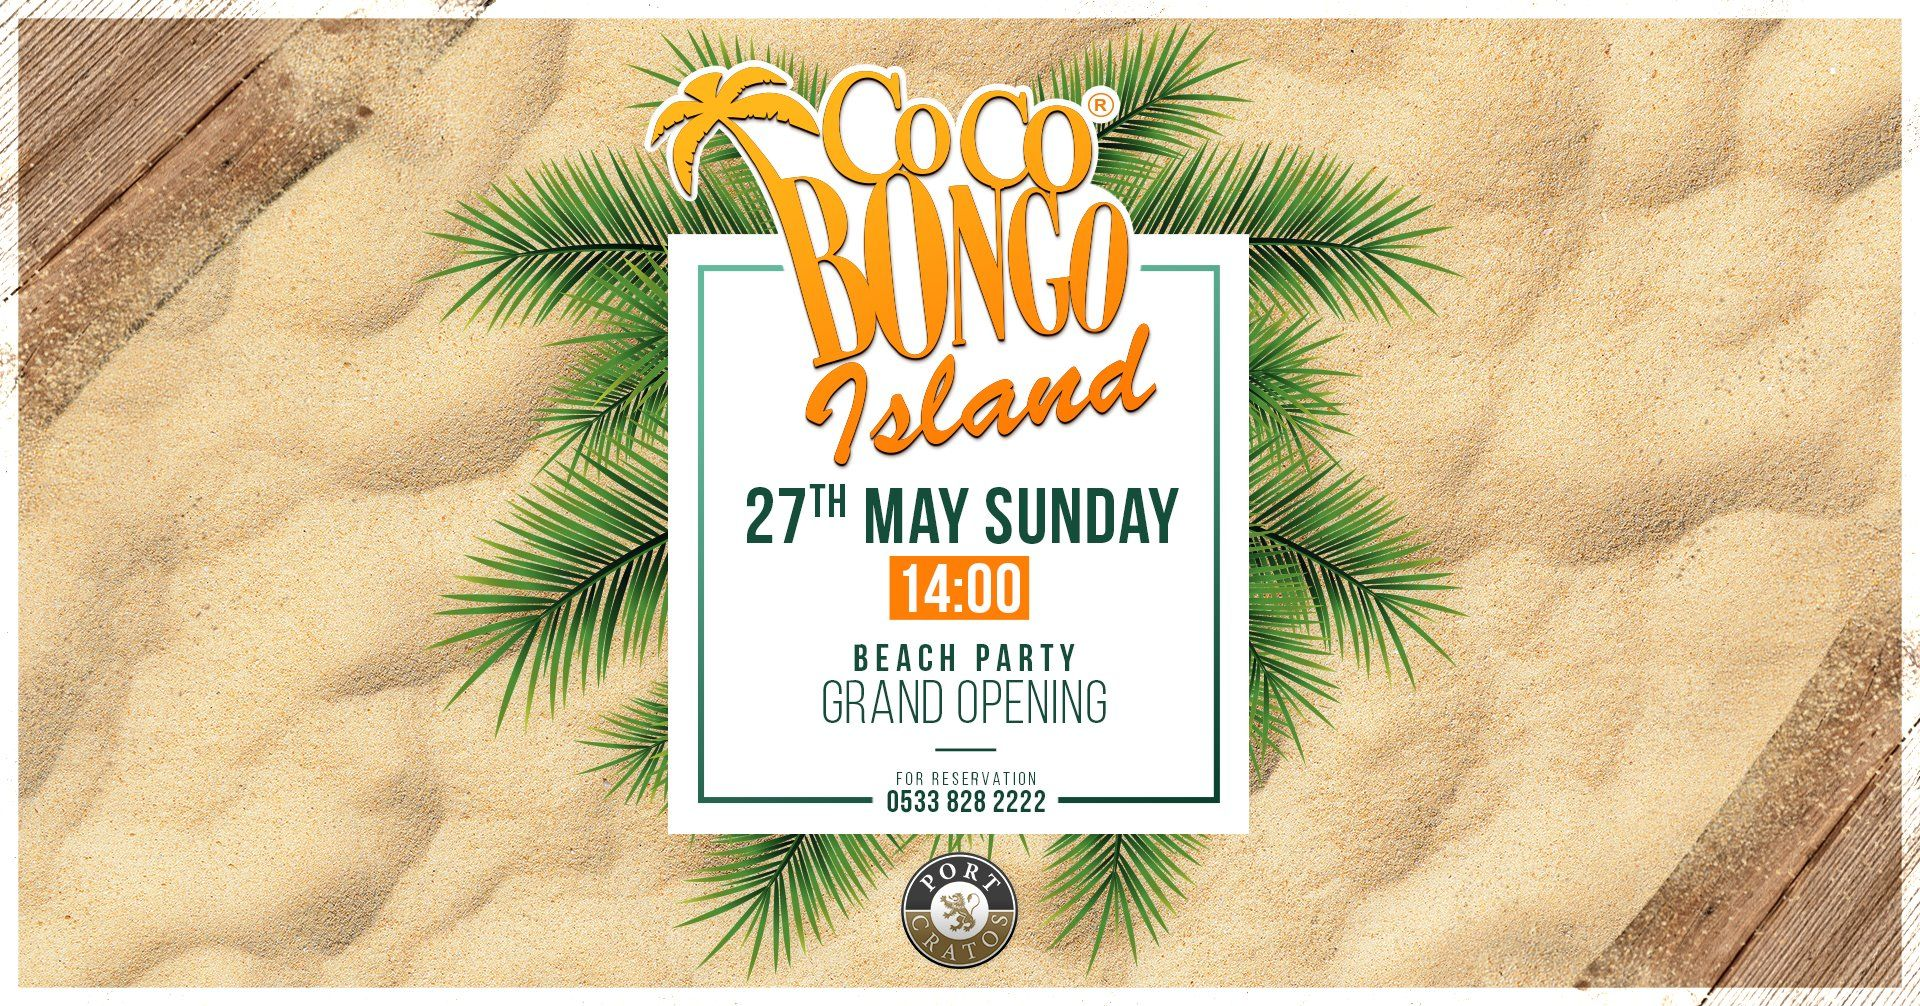 Beach Party Grand Opening - Coco Bongo